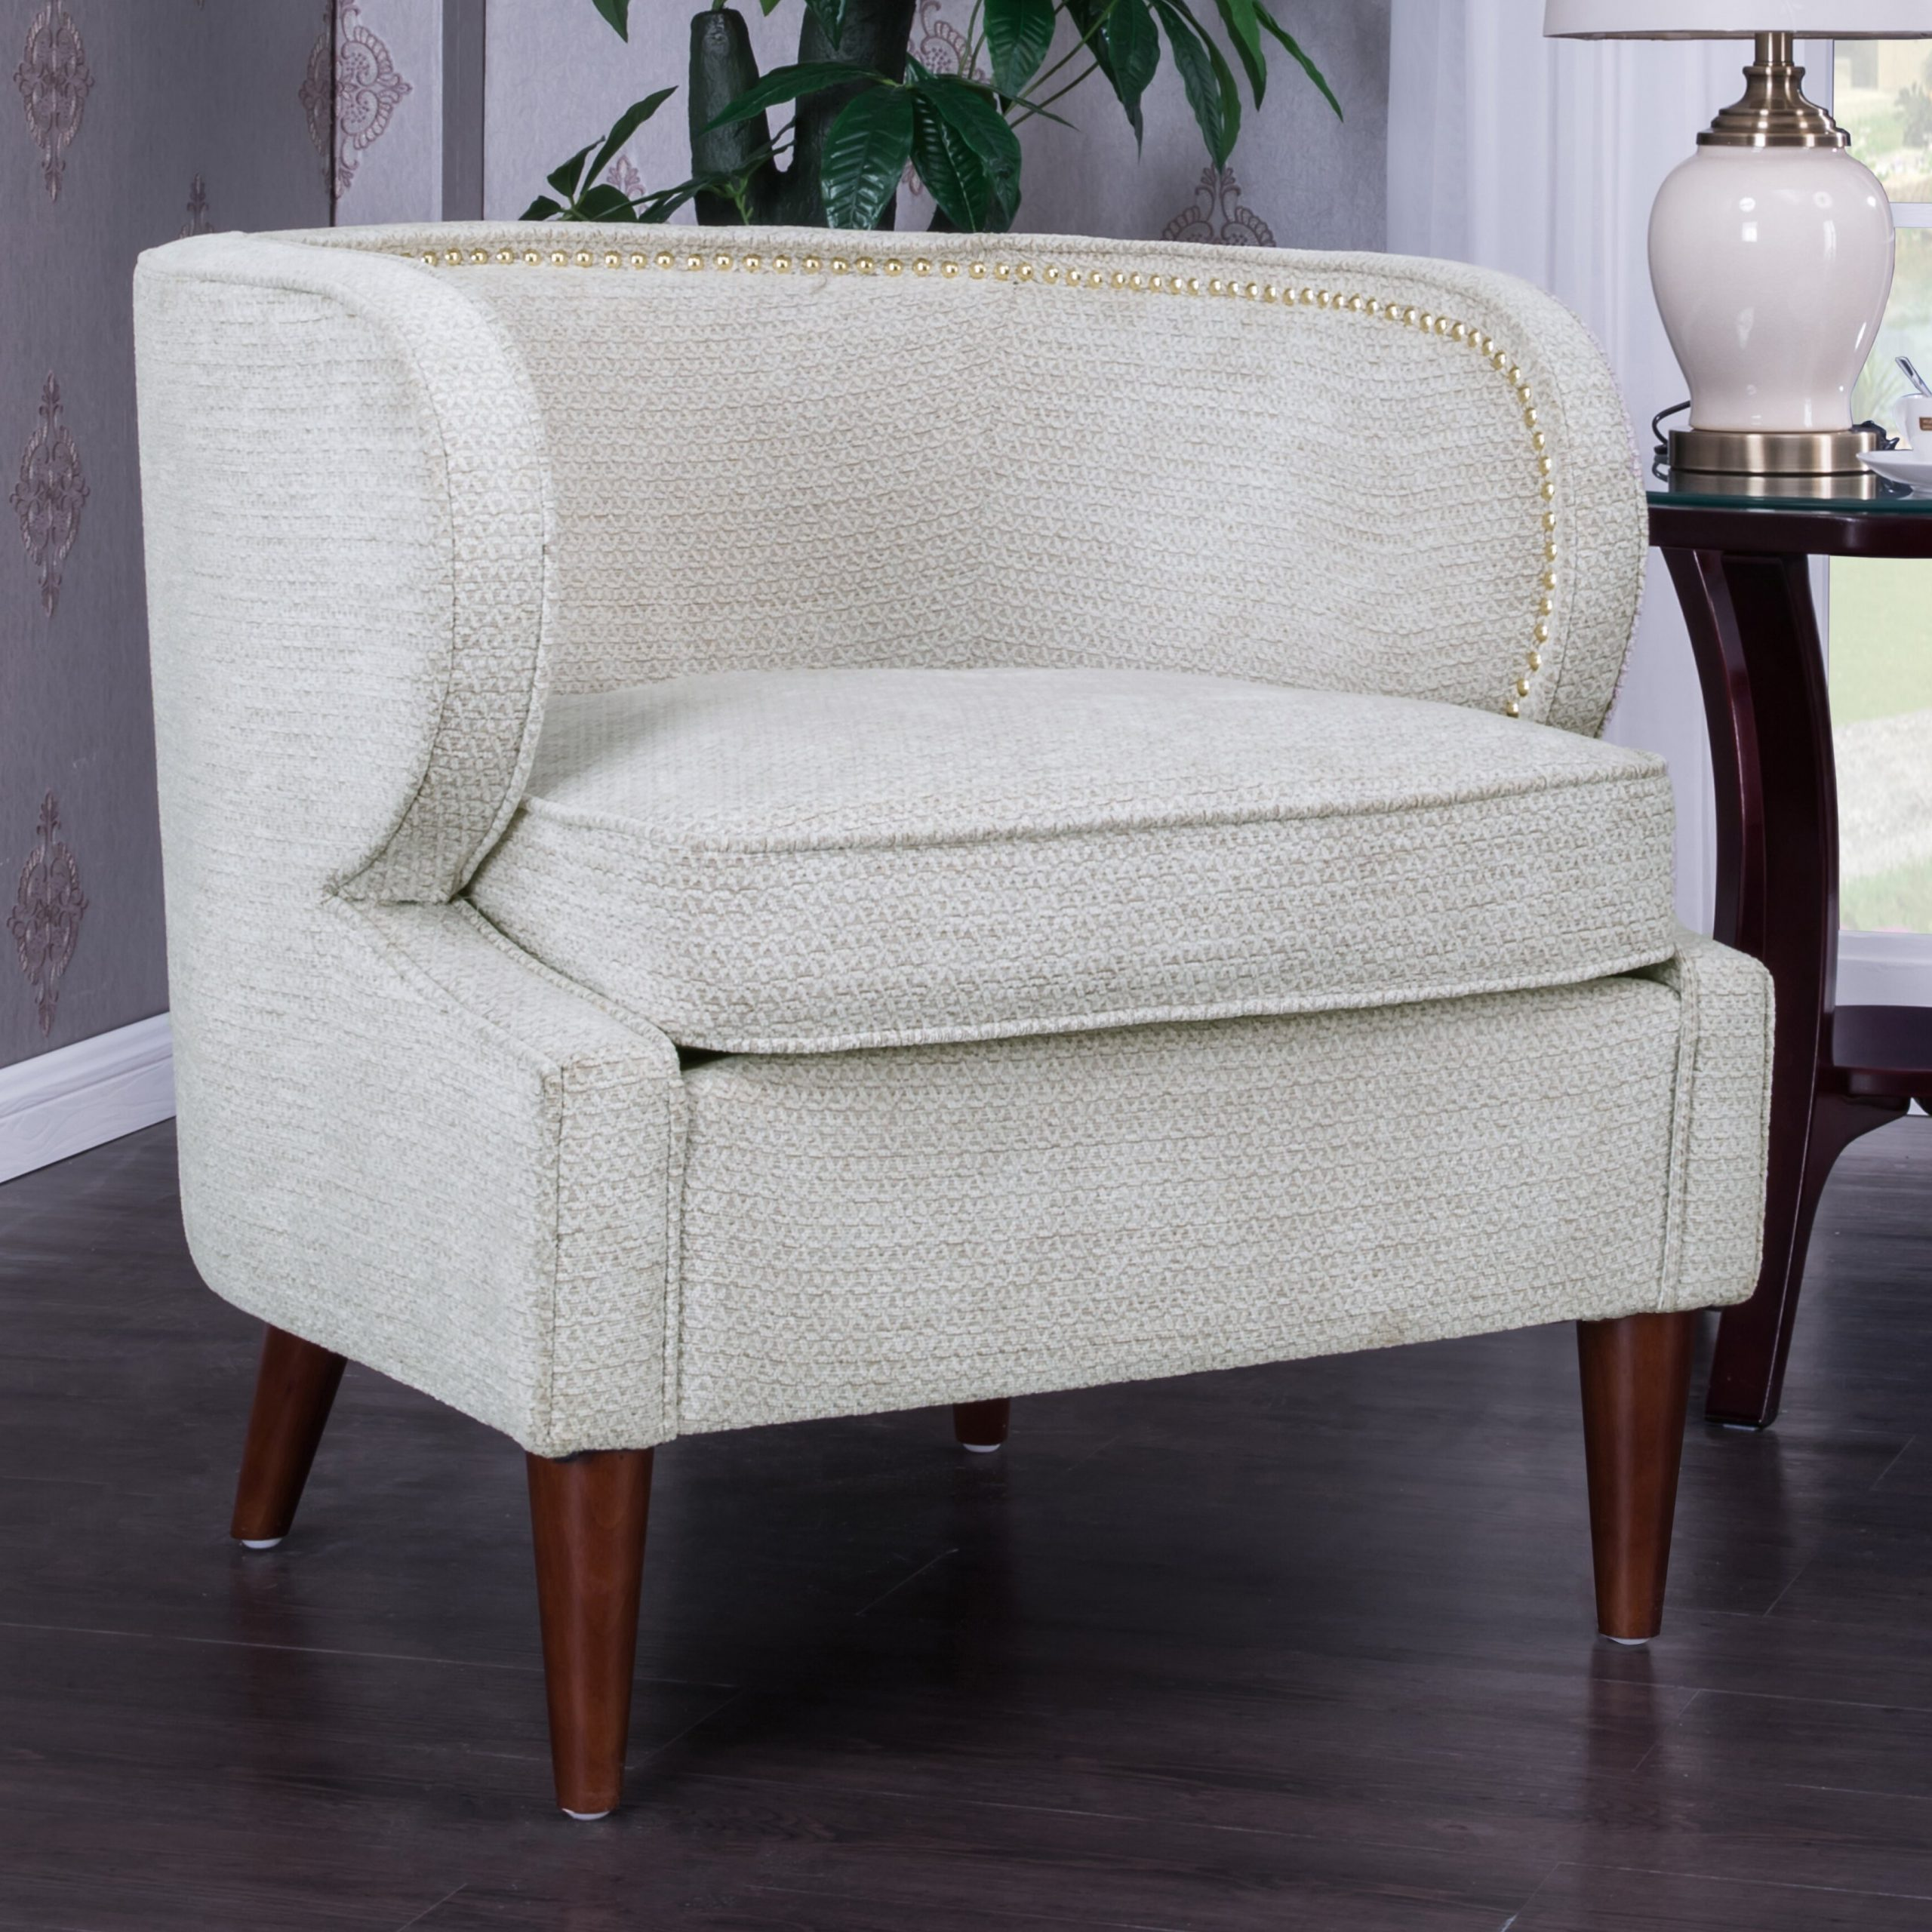 Famous Landisville Barrel Chair Intended For Liston Faux Leather Barrel Chairs (View 10 of 20)